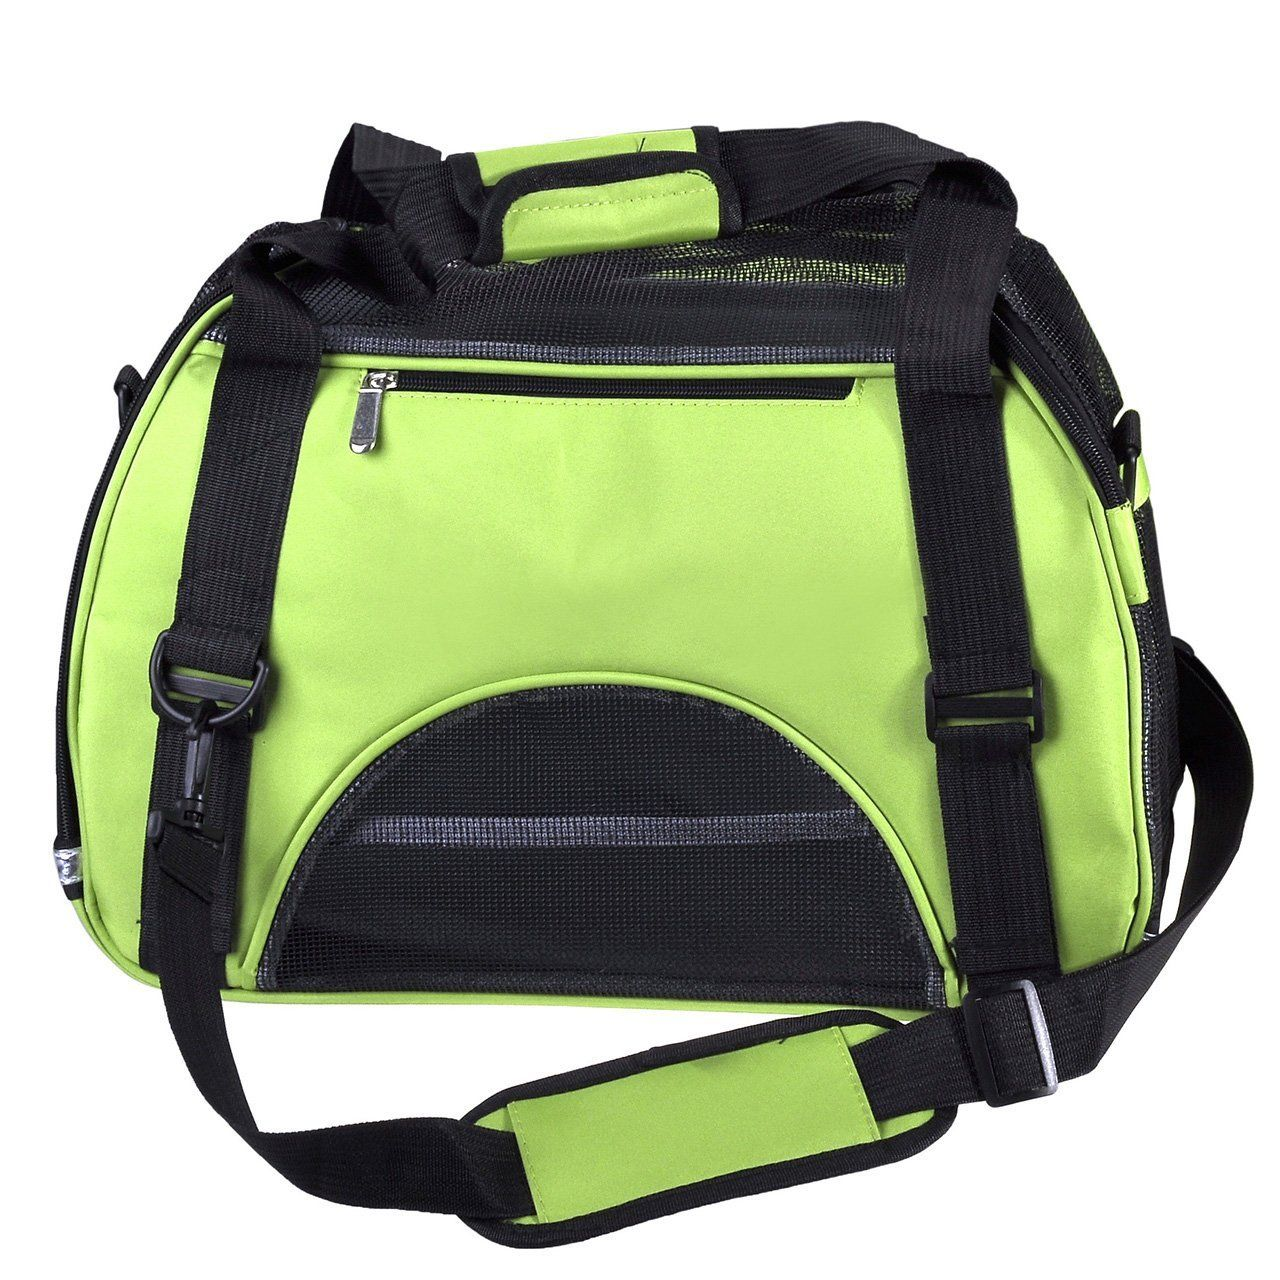 Yoption Airline Approved Portable Pet Carrier Tote Bag